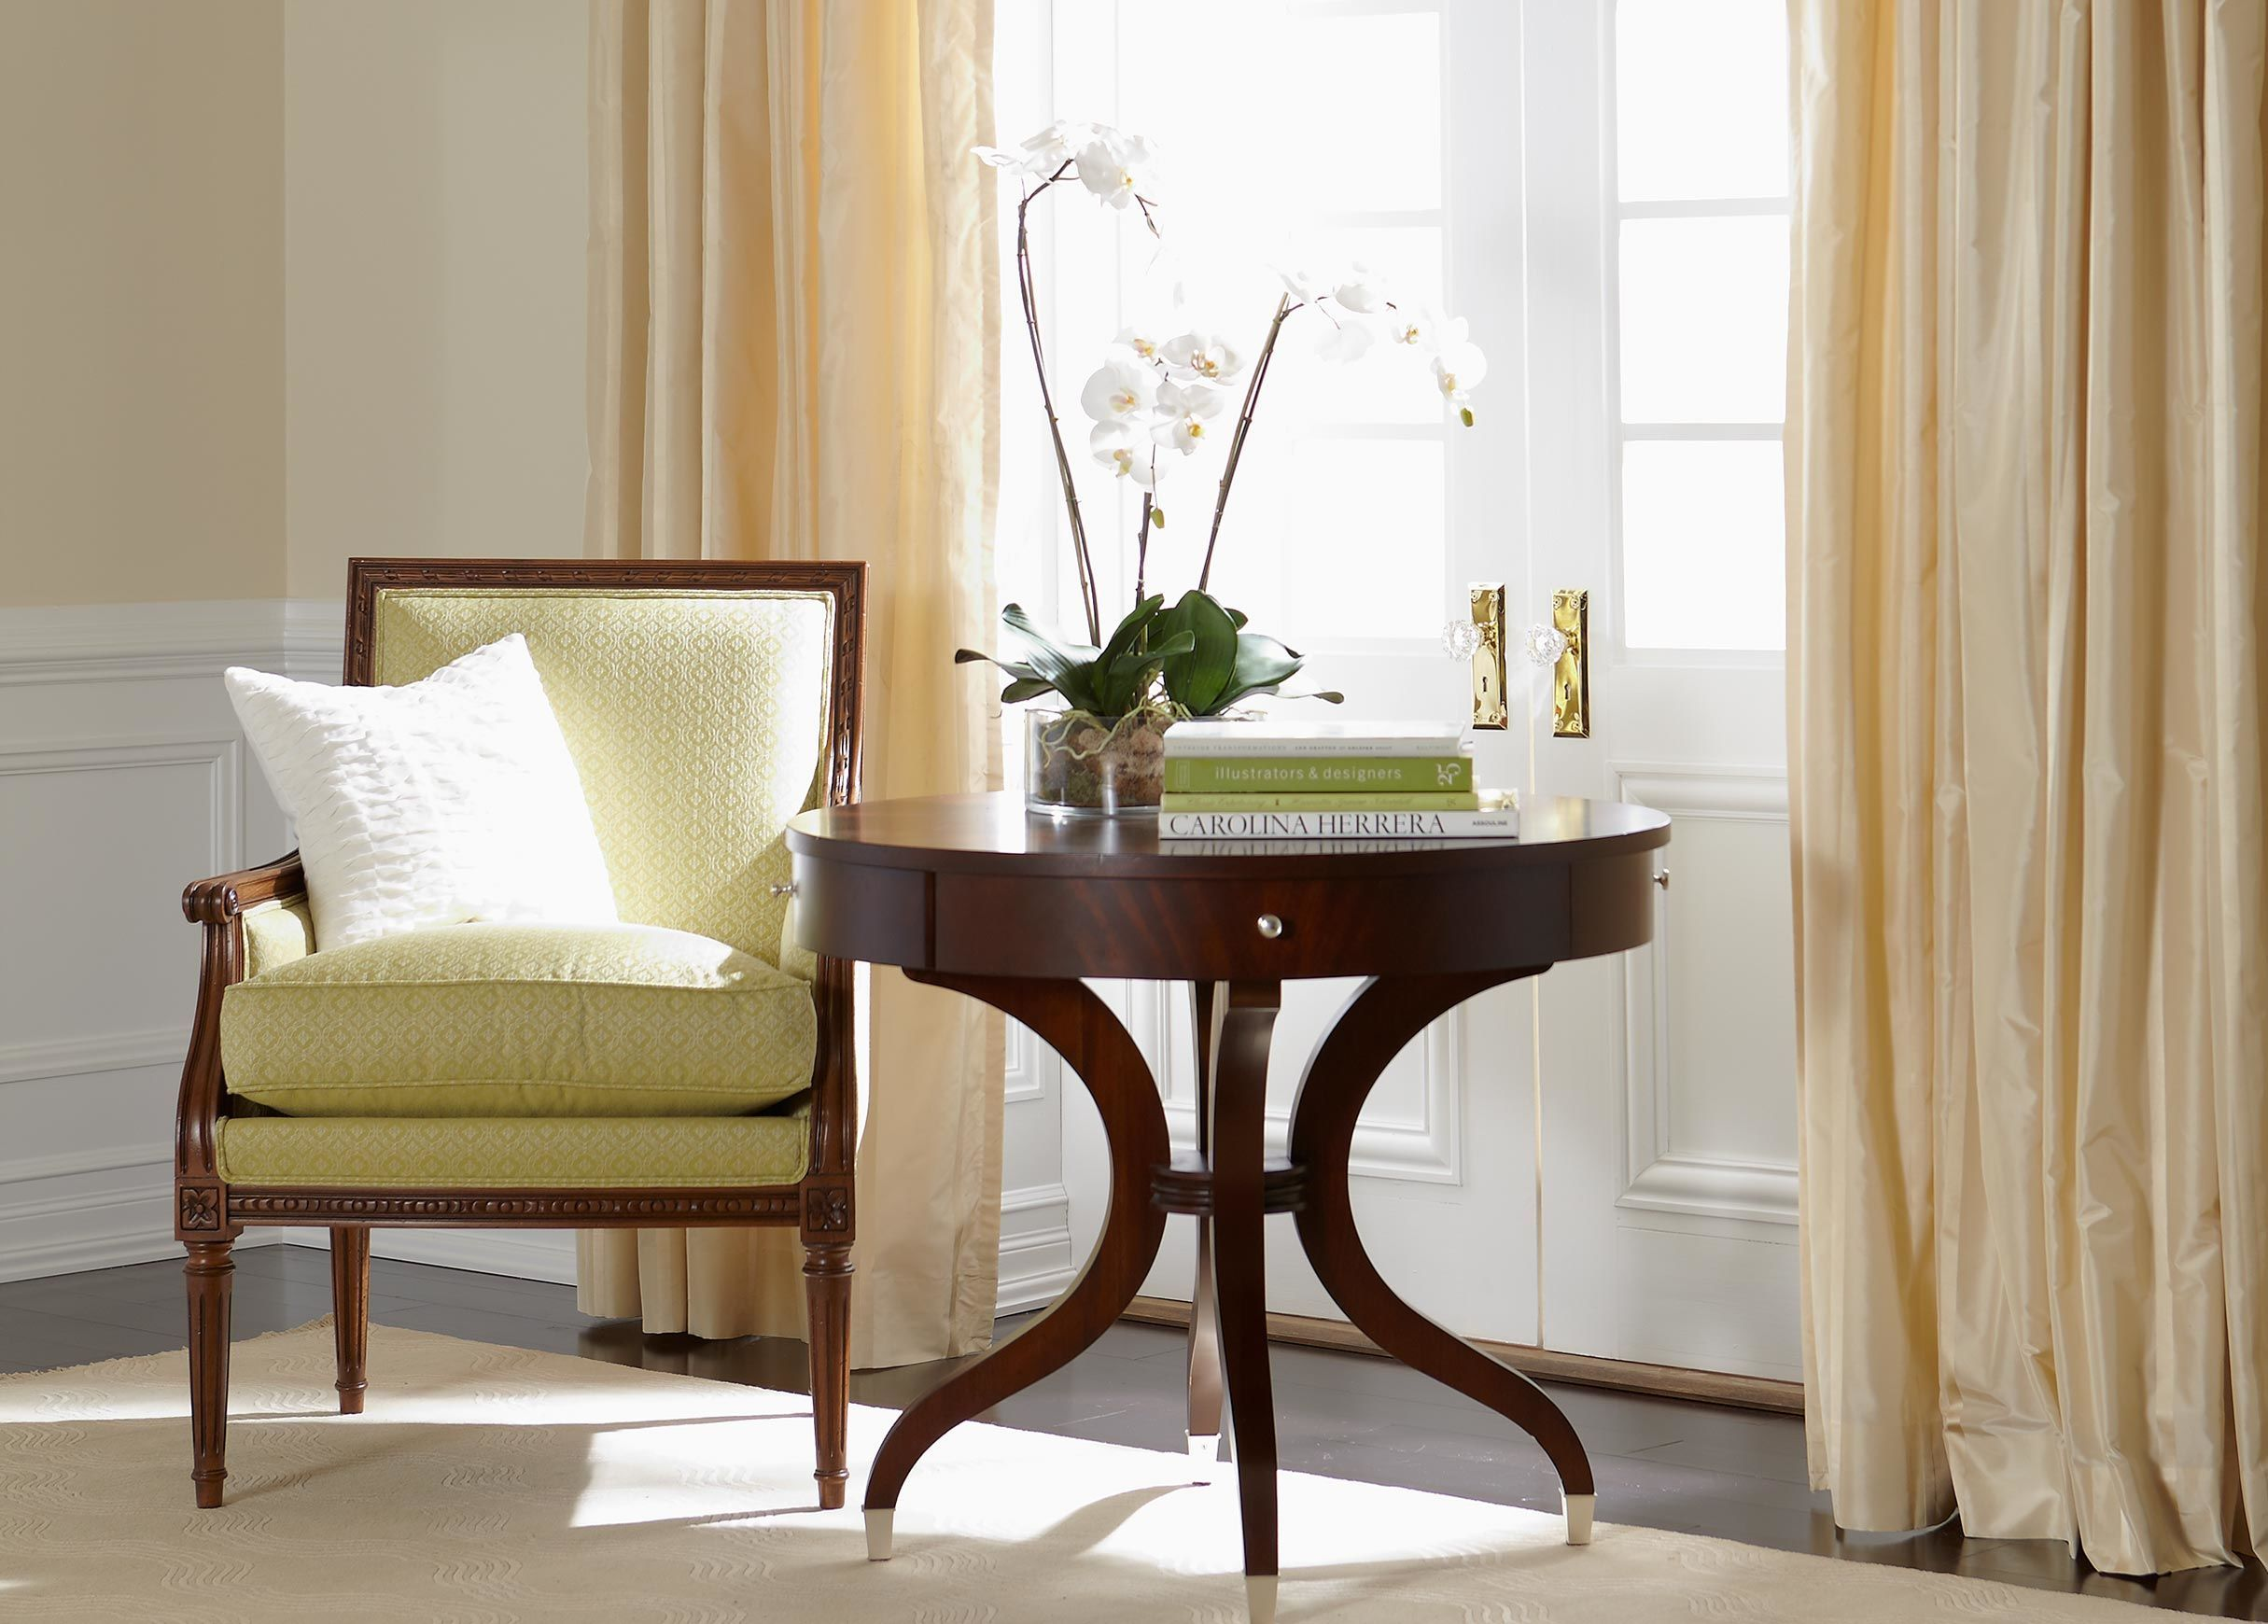 Living Room Chairs Ethan Allen Giselle Chair Ethan Allen Palm Coast Spring 2016 Pinterest